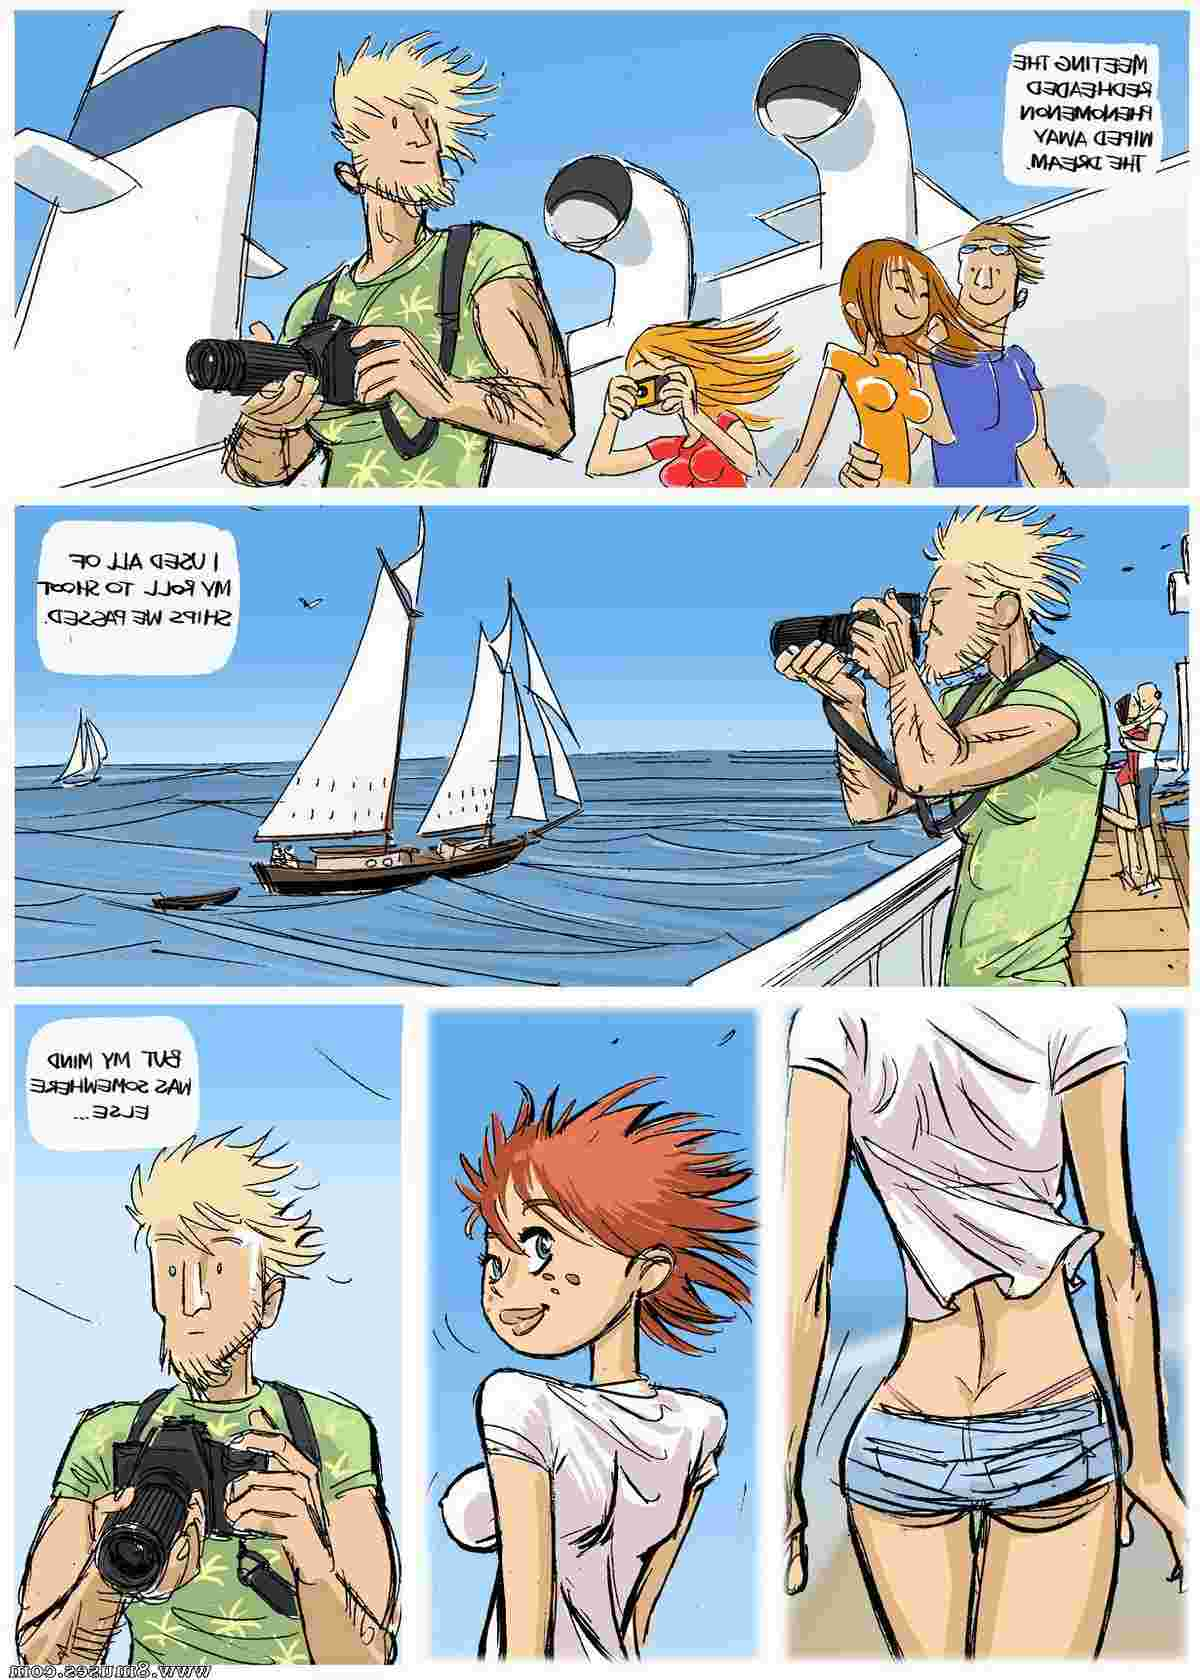 Slipshine-Comics/Lust-Boat Lust_Boat__8muses_-_Sex_and_Porn_Comics_6.jpg